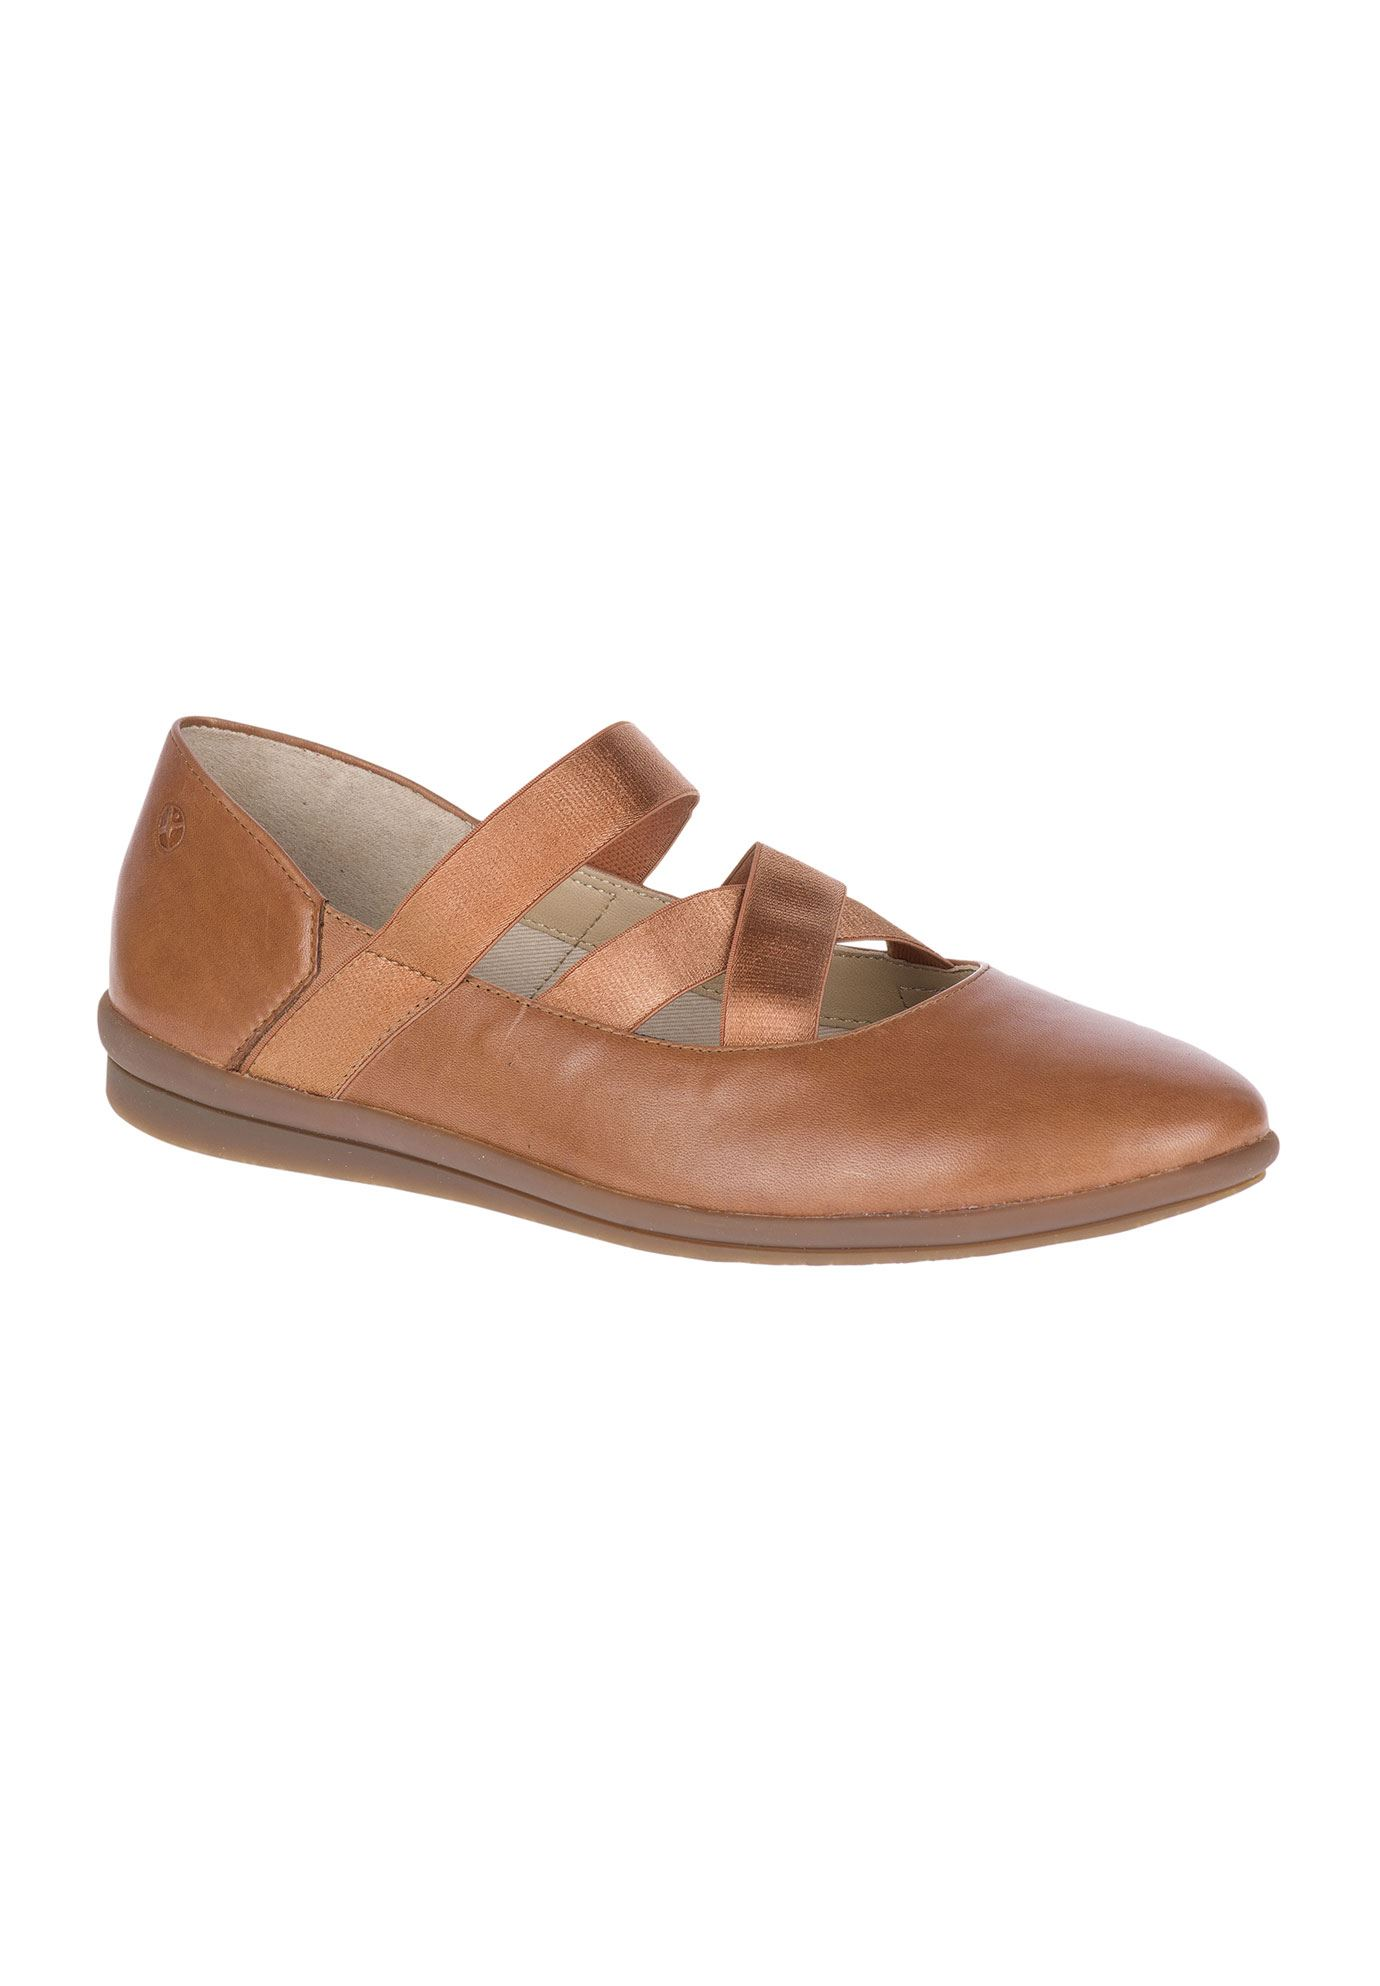 Meree Madrine Flats by Hush Puppies®,